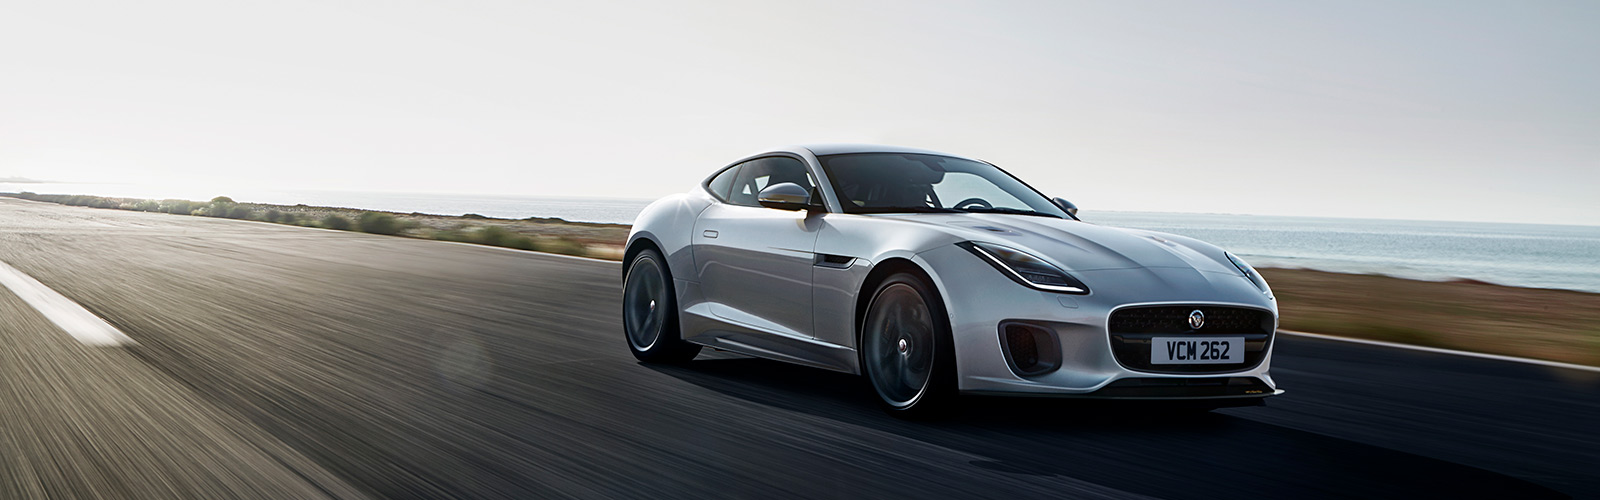 Close-up of Jaguar F-TYPE driving on-road